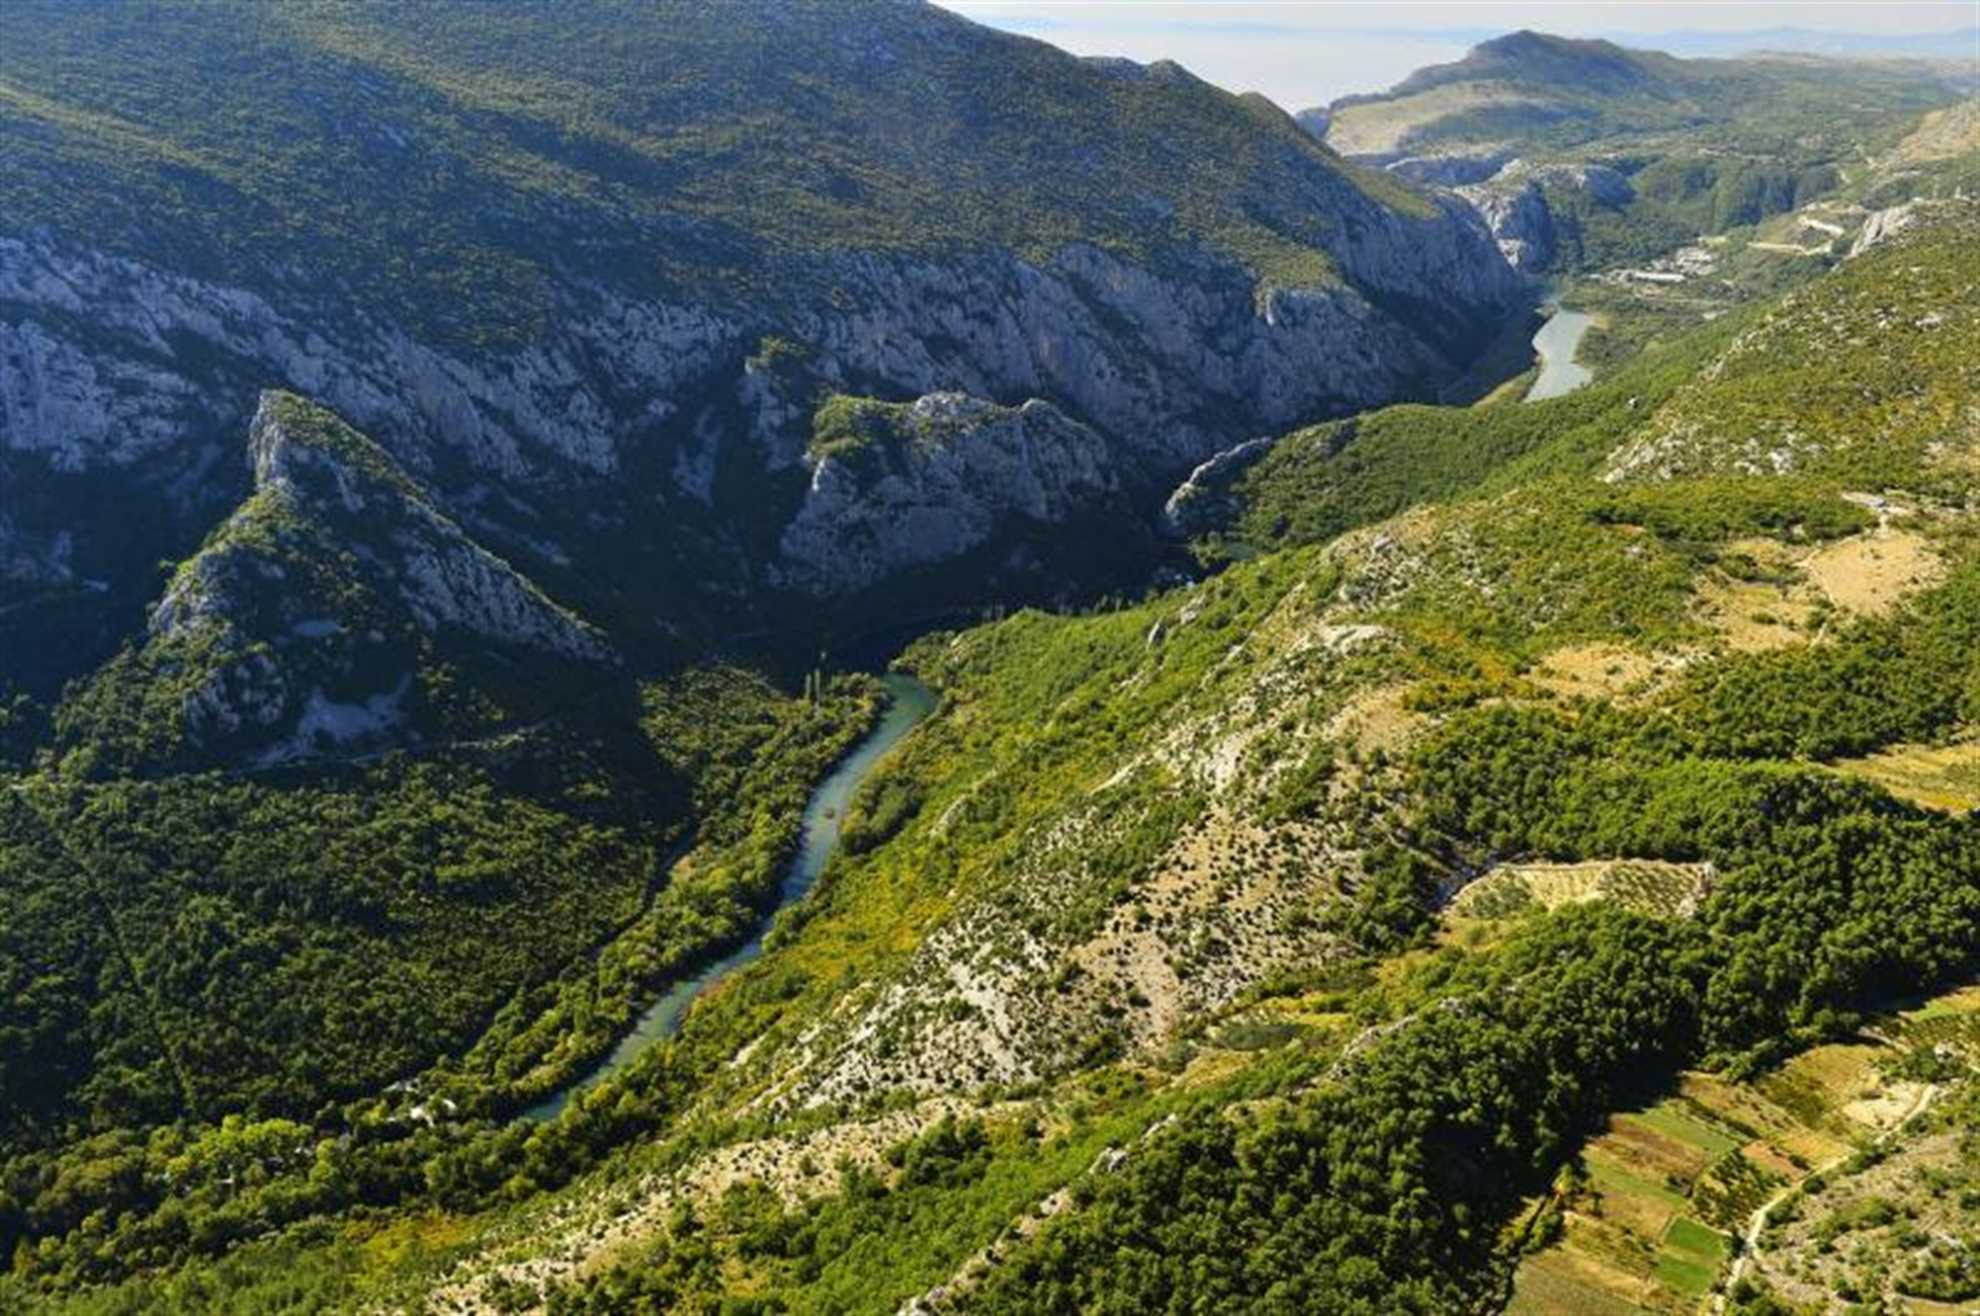 Cetina River Canyon